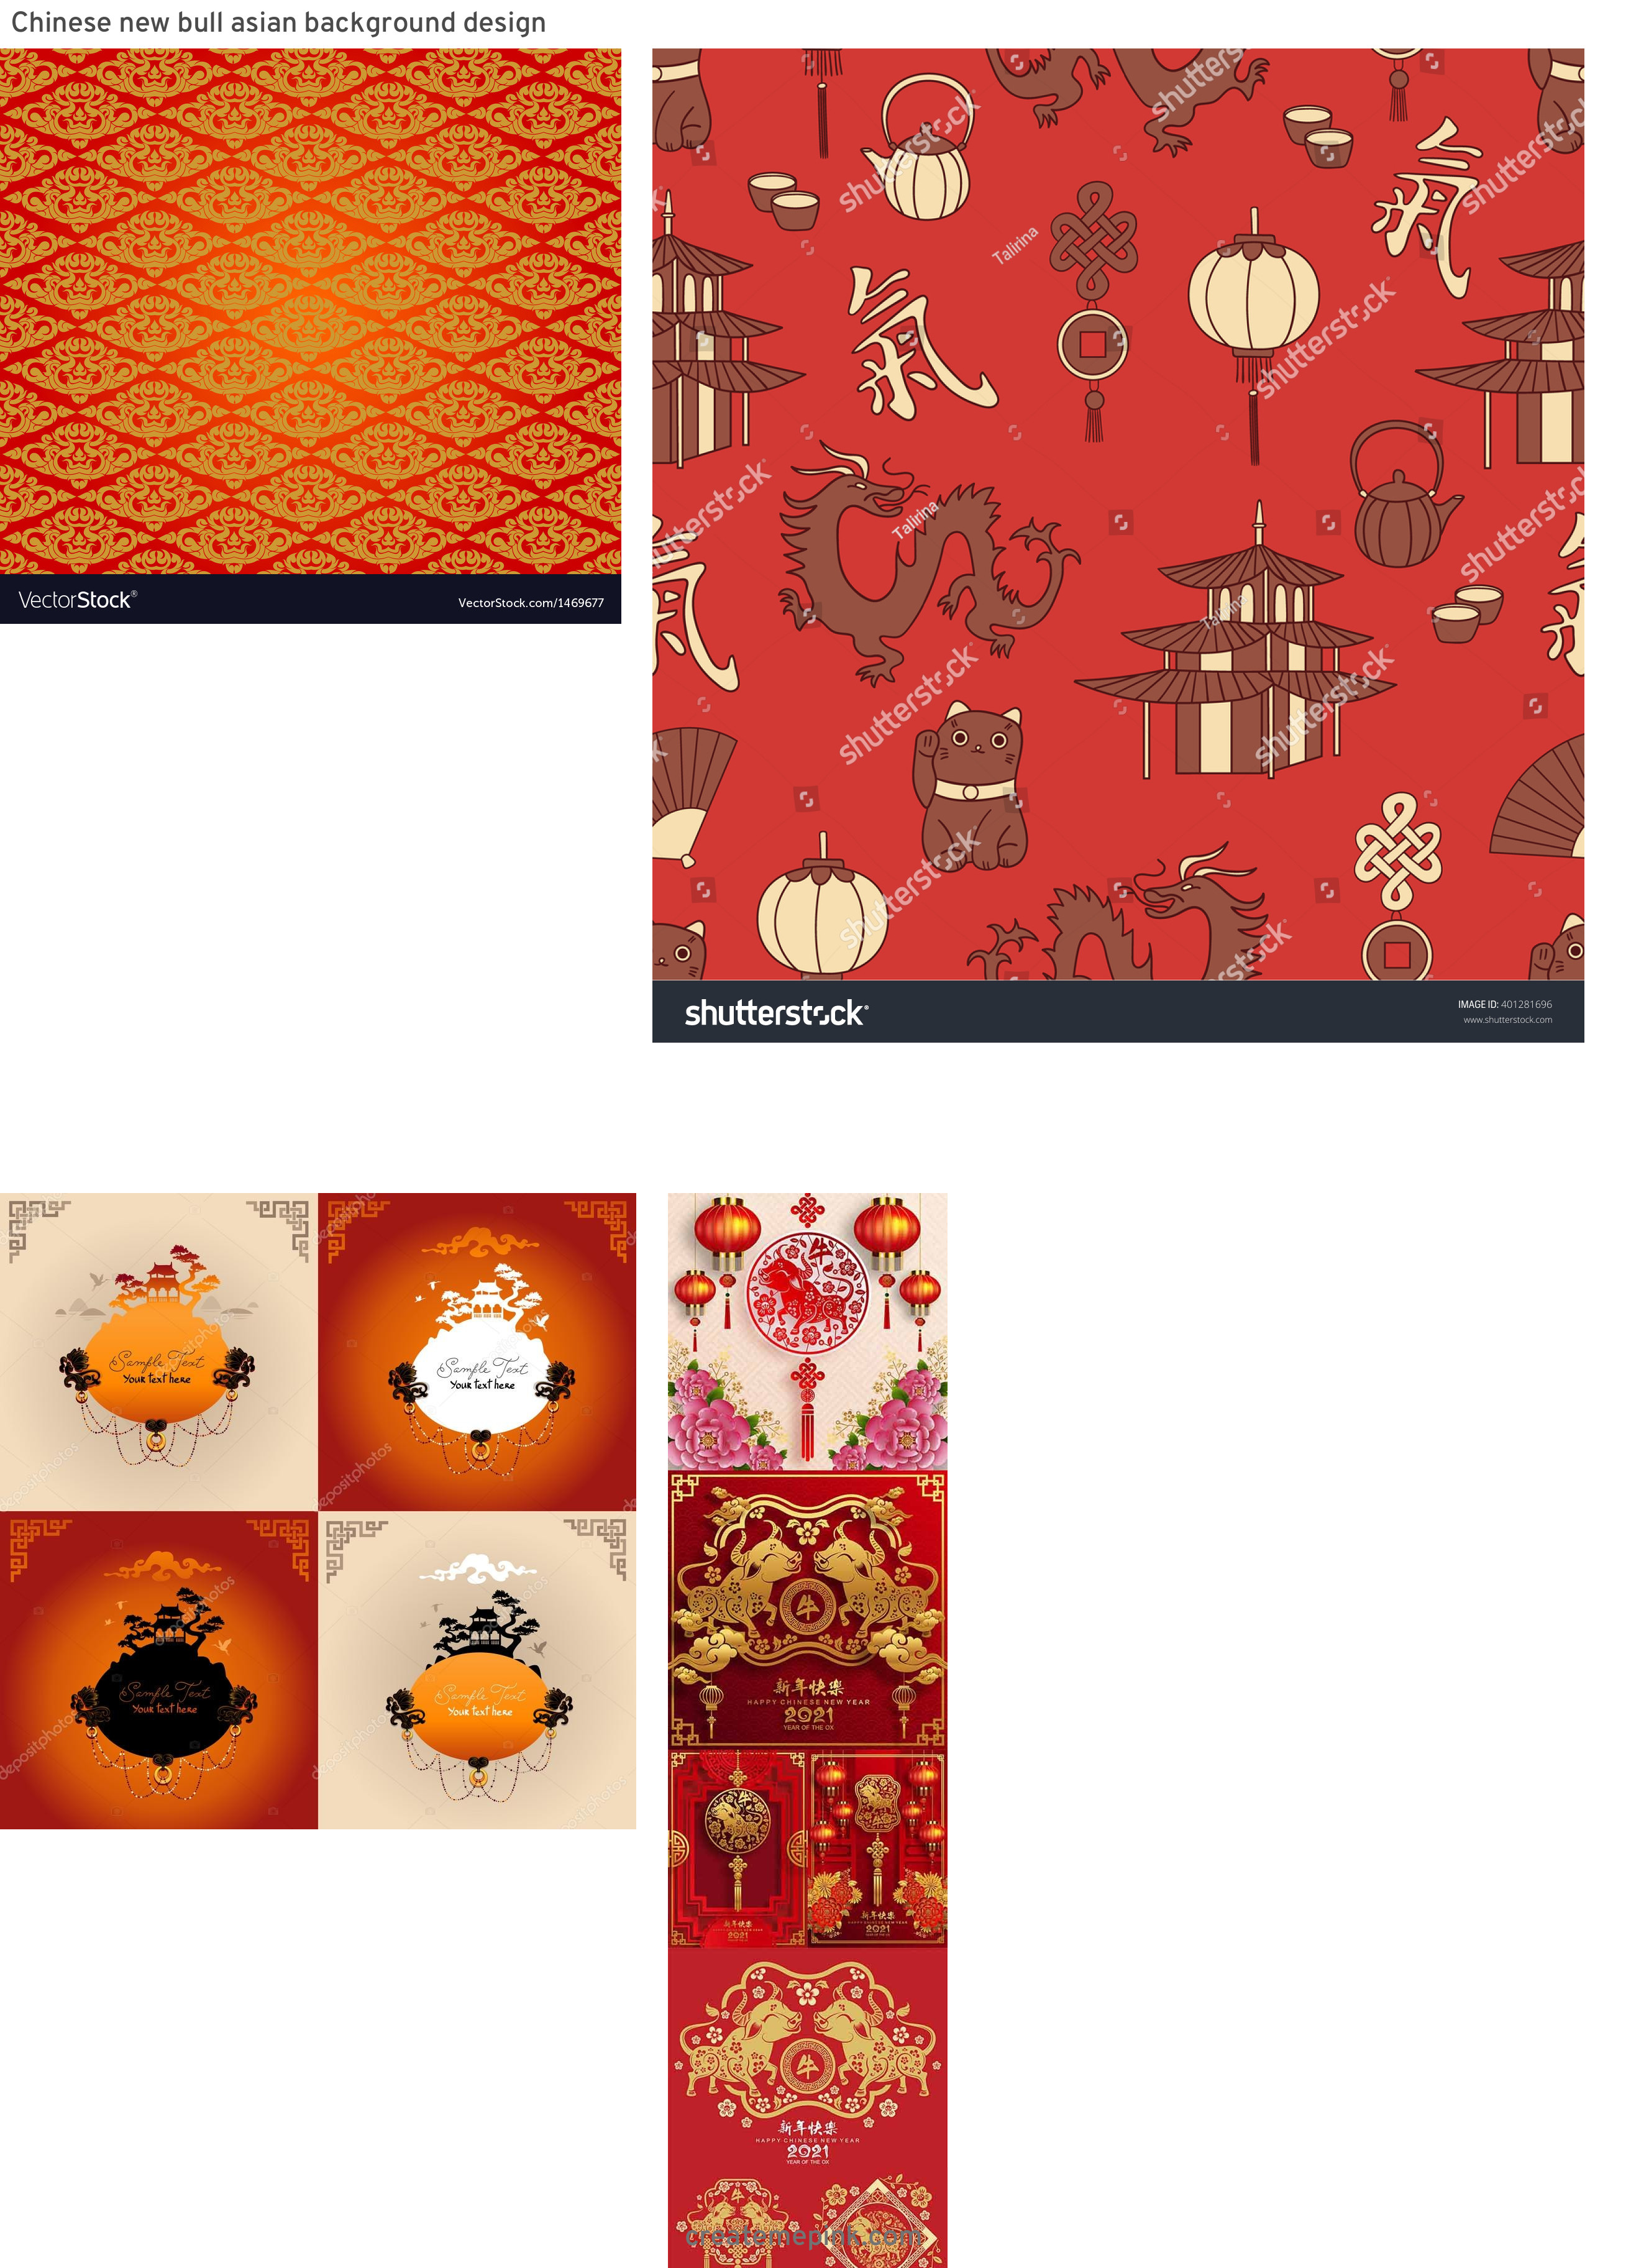 Asian Background Vector: Chinese New Bull Asian Background Design